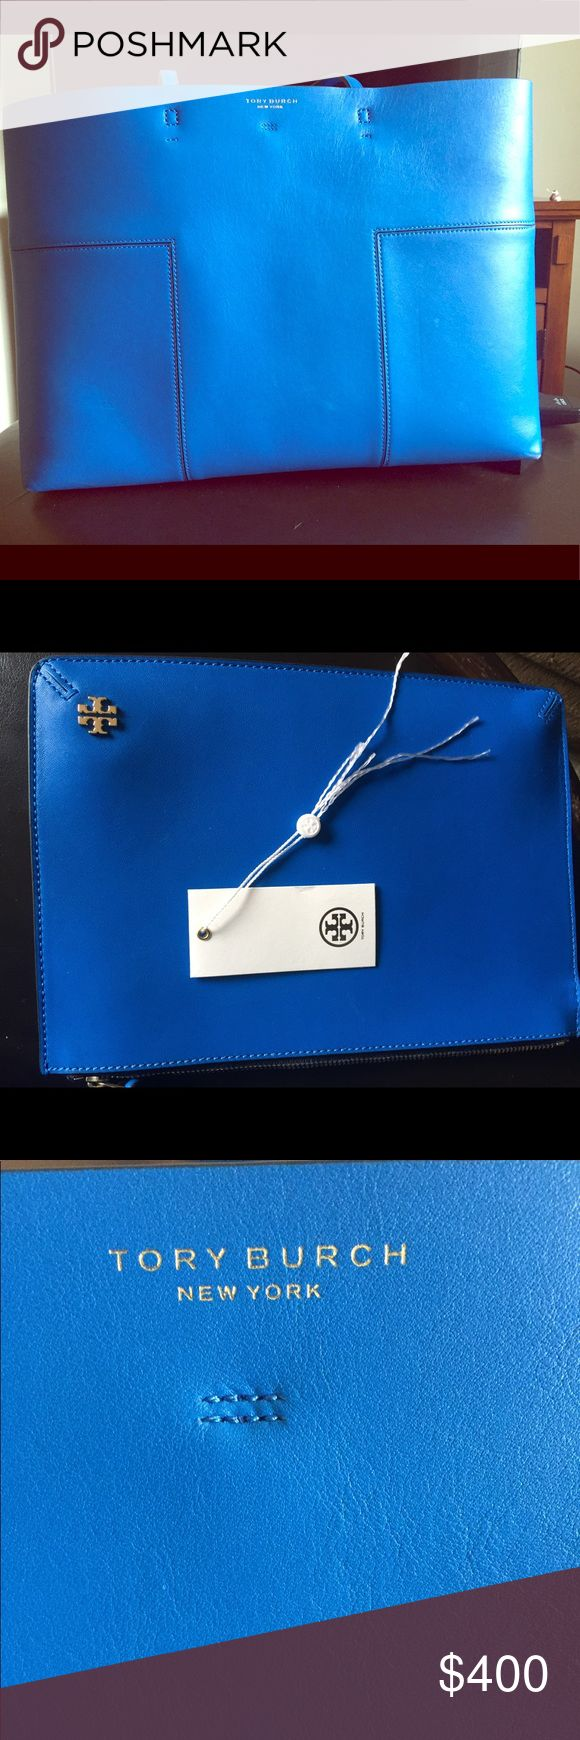 Tory Burch Cobalt Blue Bag Statement bag. Purchased in October 2017. The handbag is clean and has excellent space. (In almost brand new condition.) Comes with a dust bag (not pictured). Clutch included in the price which clips into the handbag or can be used separately. Included in list price. Fits a 15 inch MacBook. Lightly used. Tory Burch Bags Totes